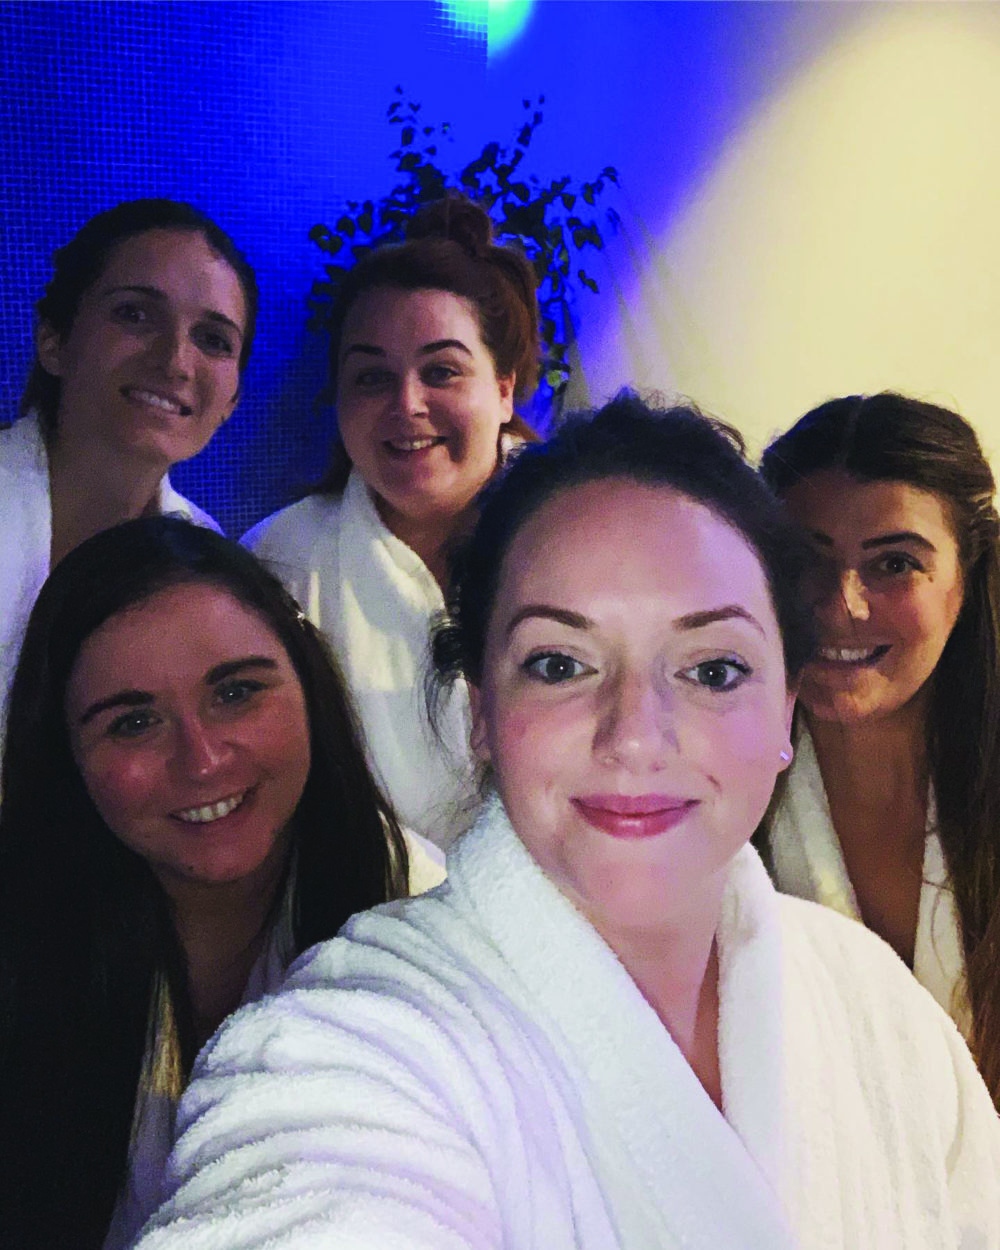 Steph and bridesmaids Pure Spa